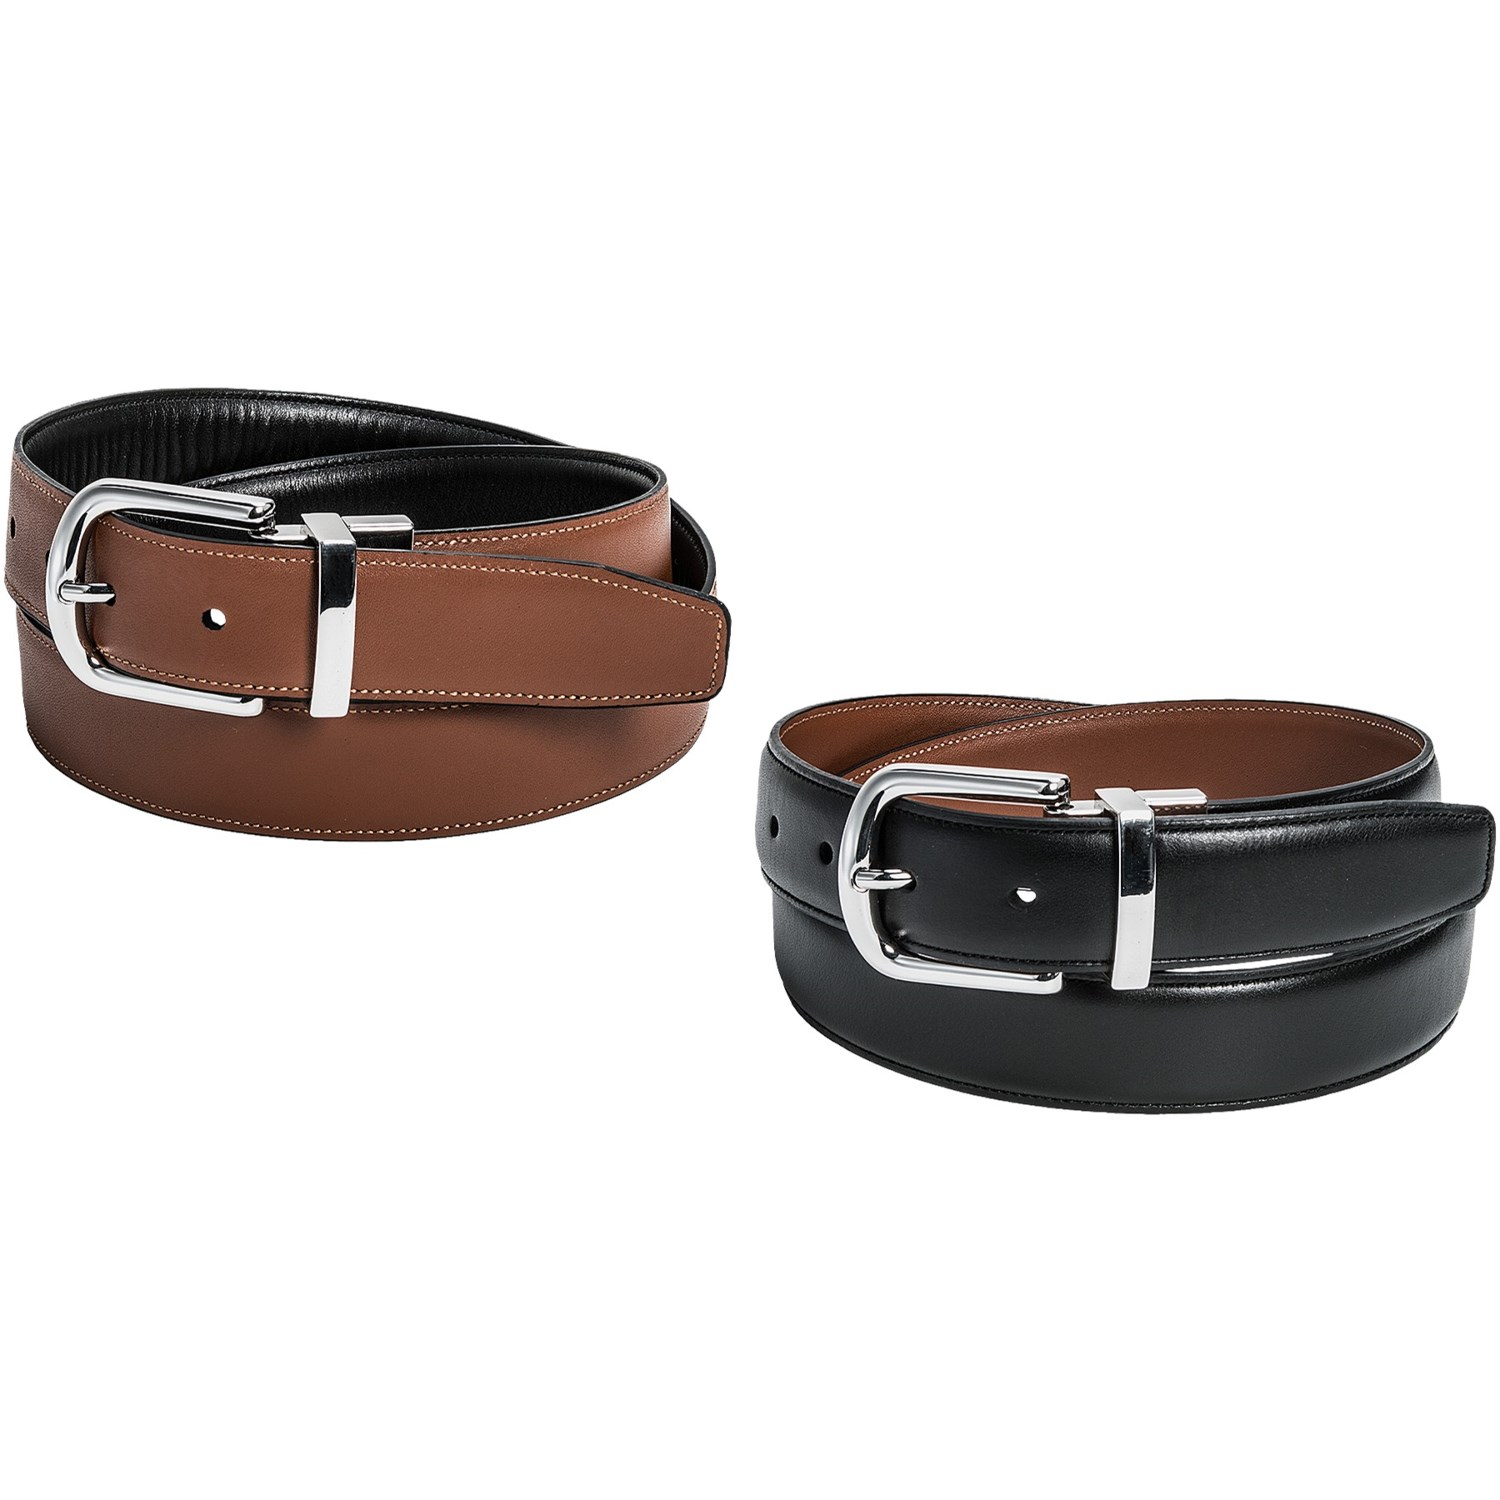 Free shipping on men's belts at manakamanamobilecenter.tk Shop leather, reversible, printed & woven belts for men from the best brands. Totally free shipping & returns.